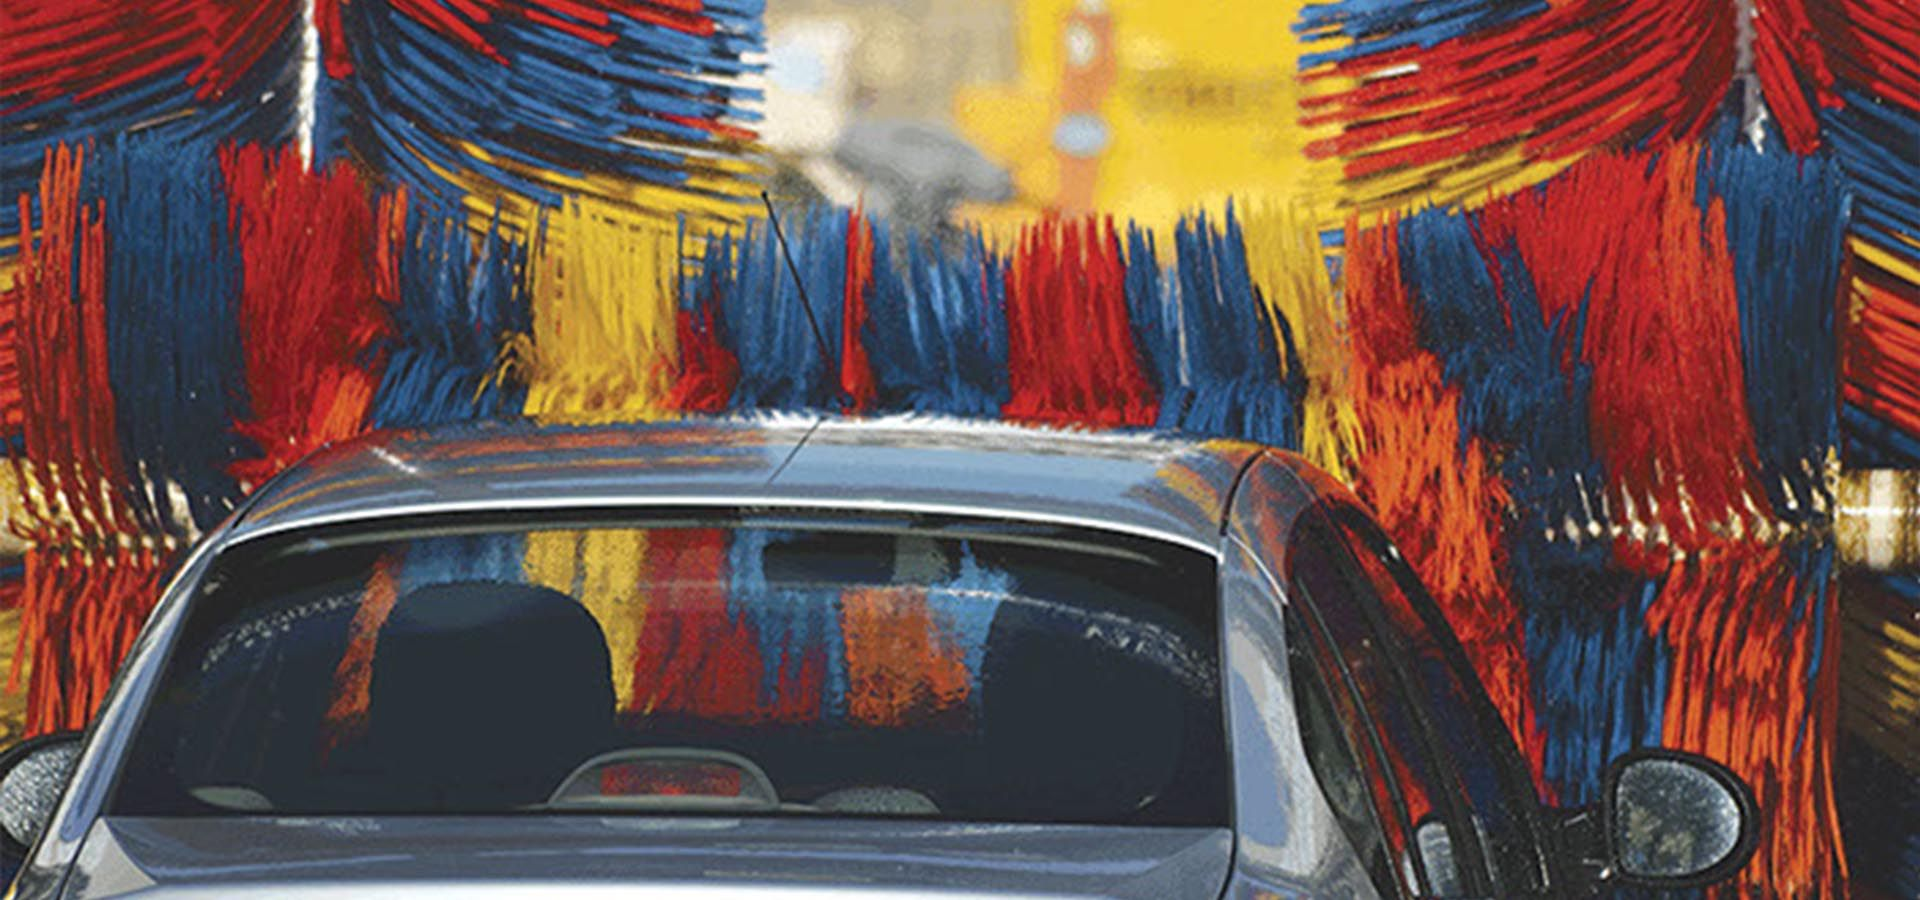 Going Beyond the Catalogue Approach for Car Wash Equipment